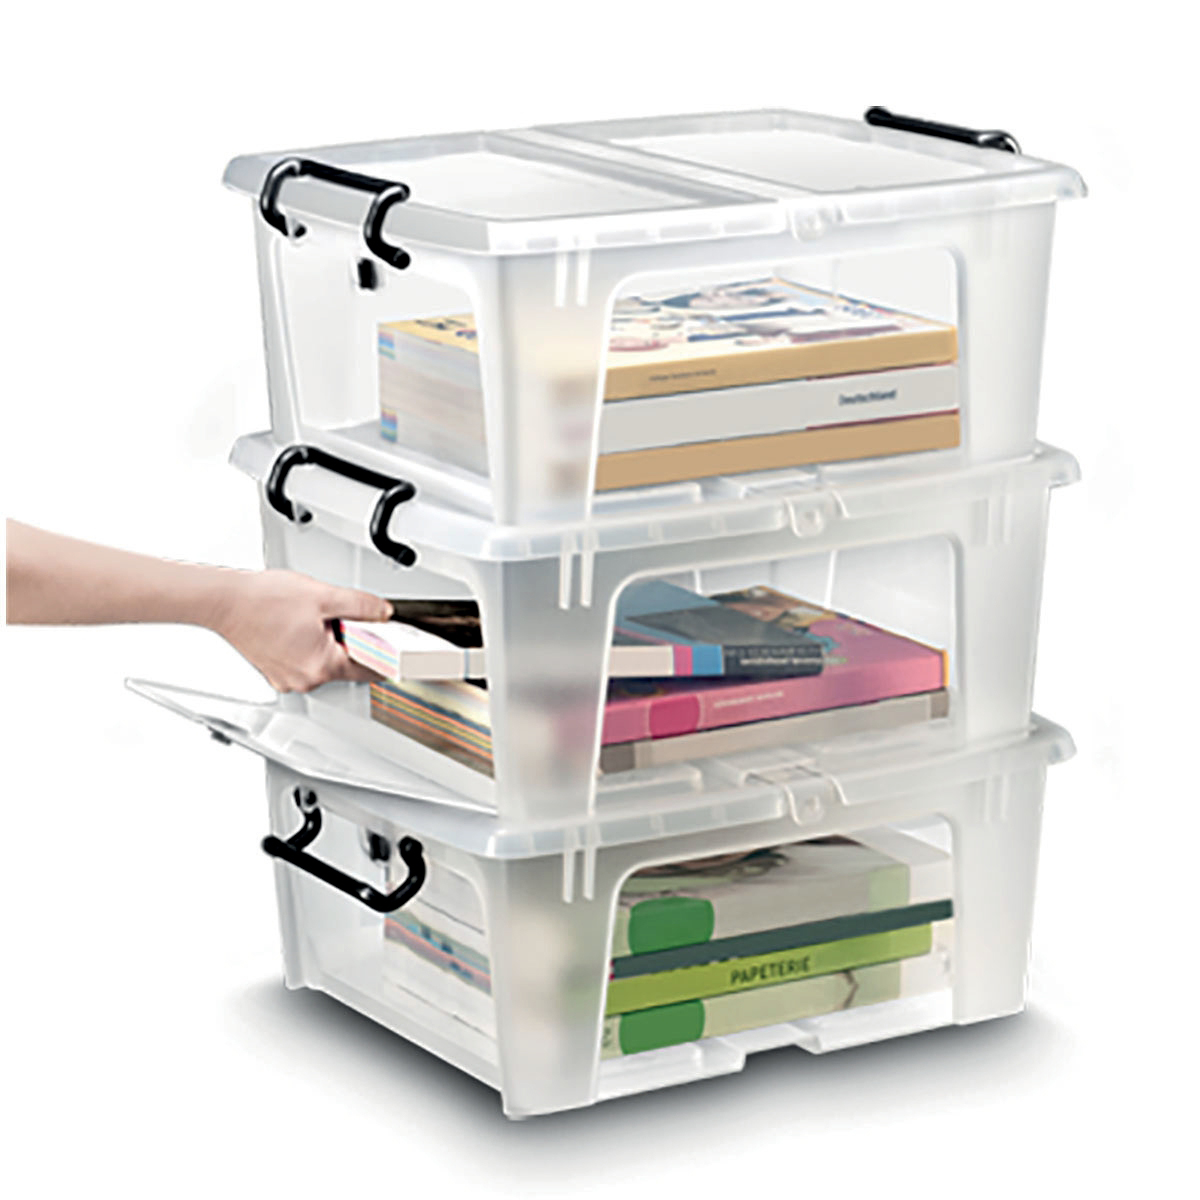 Storage Boxes Strata Smart Box Clip-On Folding Lid Opens Front or Side 20 Litre Clear Ref HW695